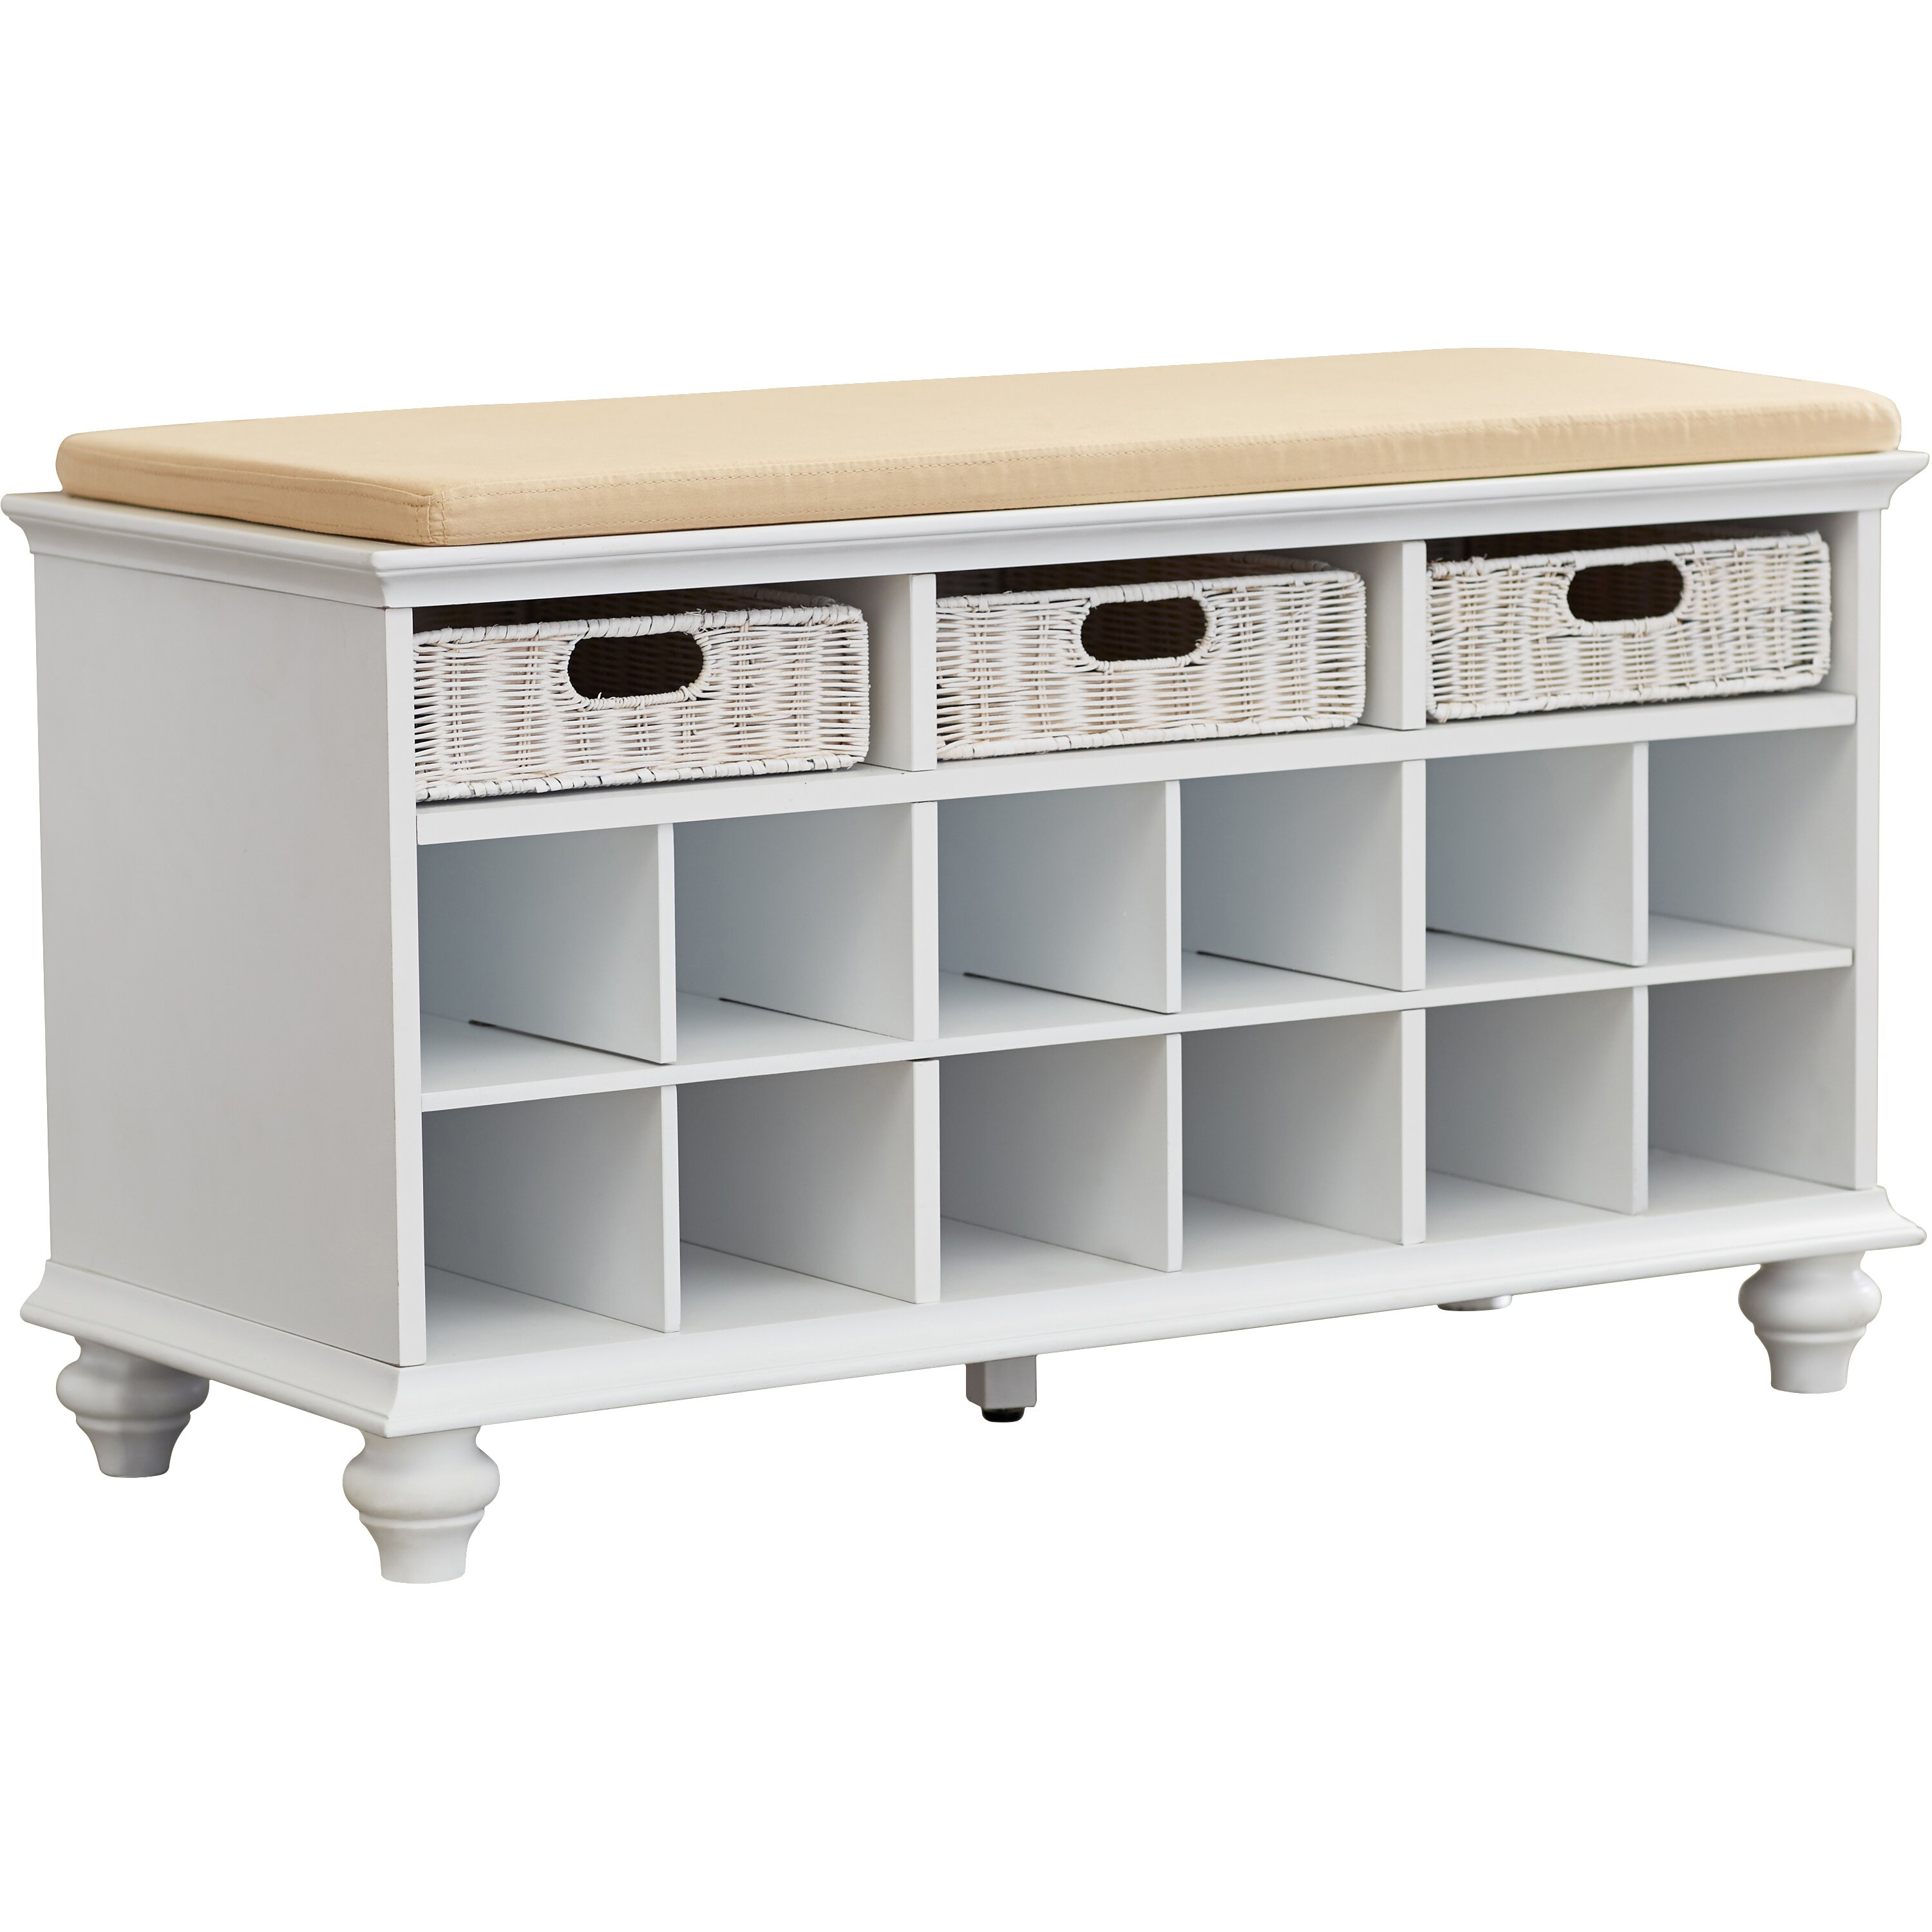 Darby Home Co Shoe Storage Bench u0026